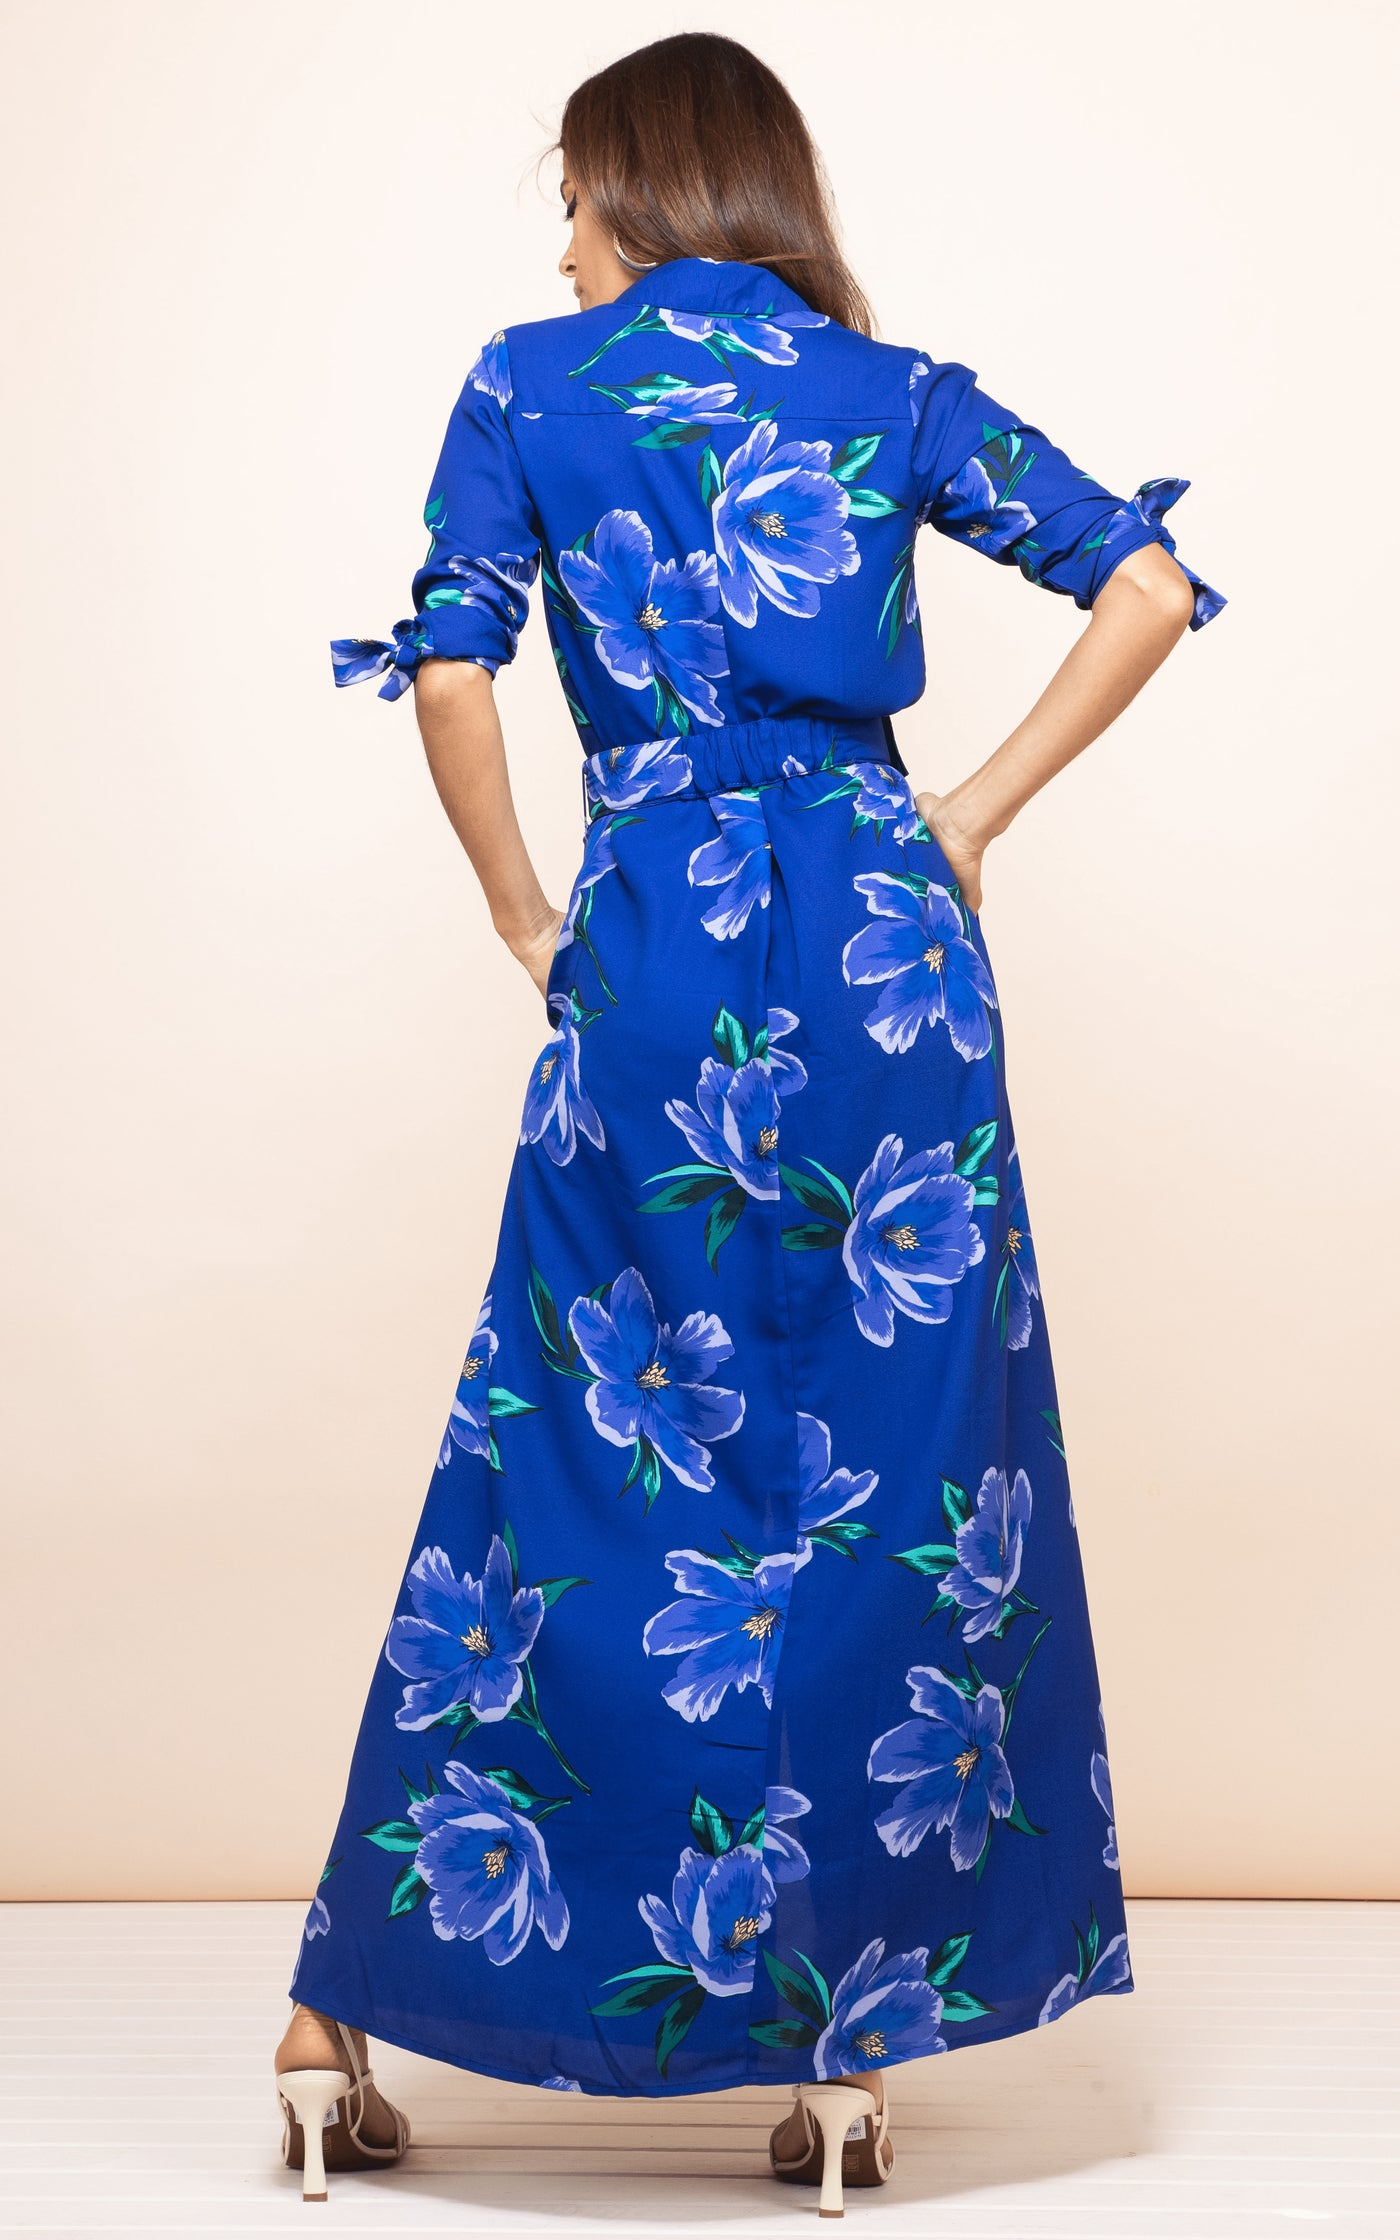 Model faces backwards with hands on hips wearing Dove Dress in blue floral print